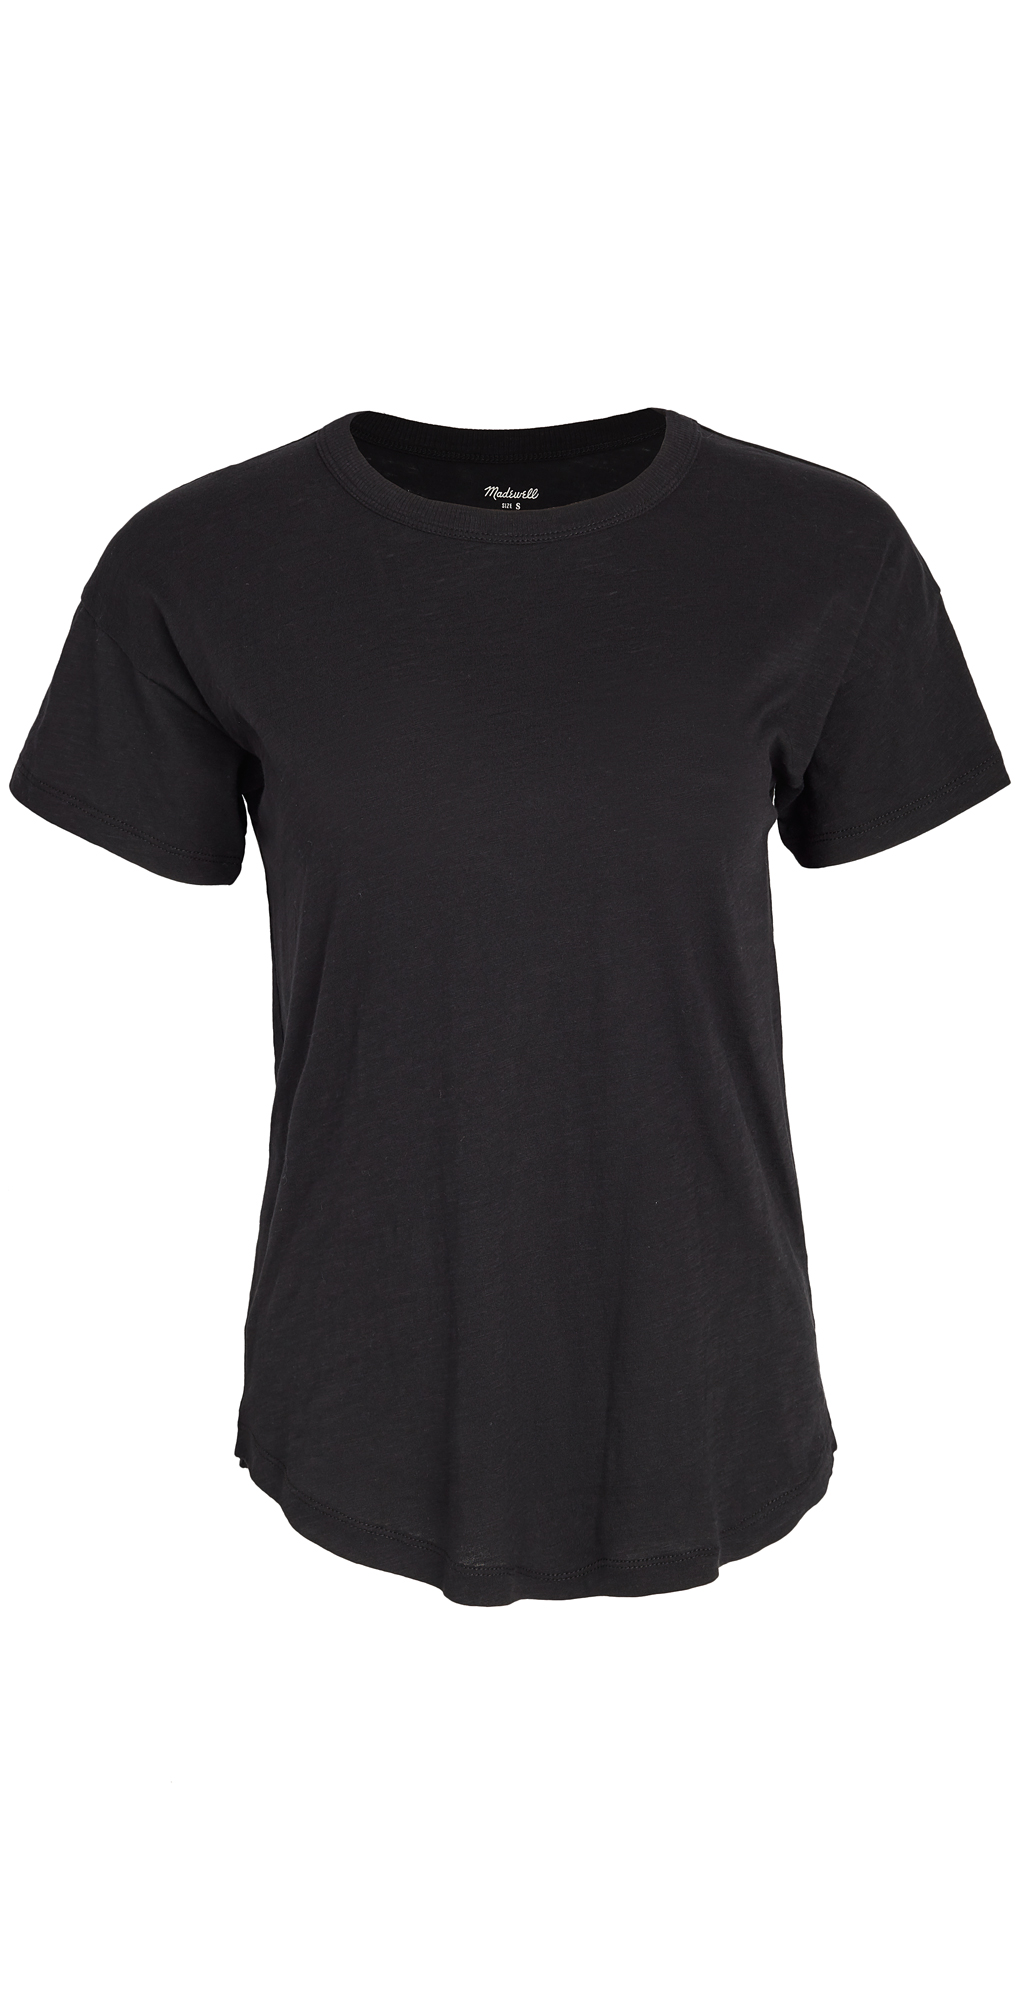 Madewell Sorrel Whisper Crew Neck Tee